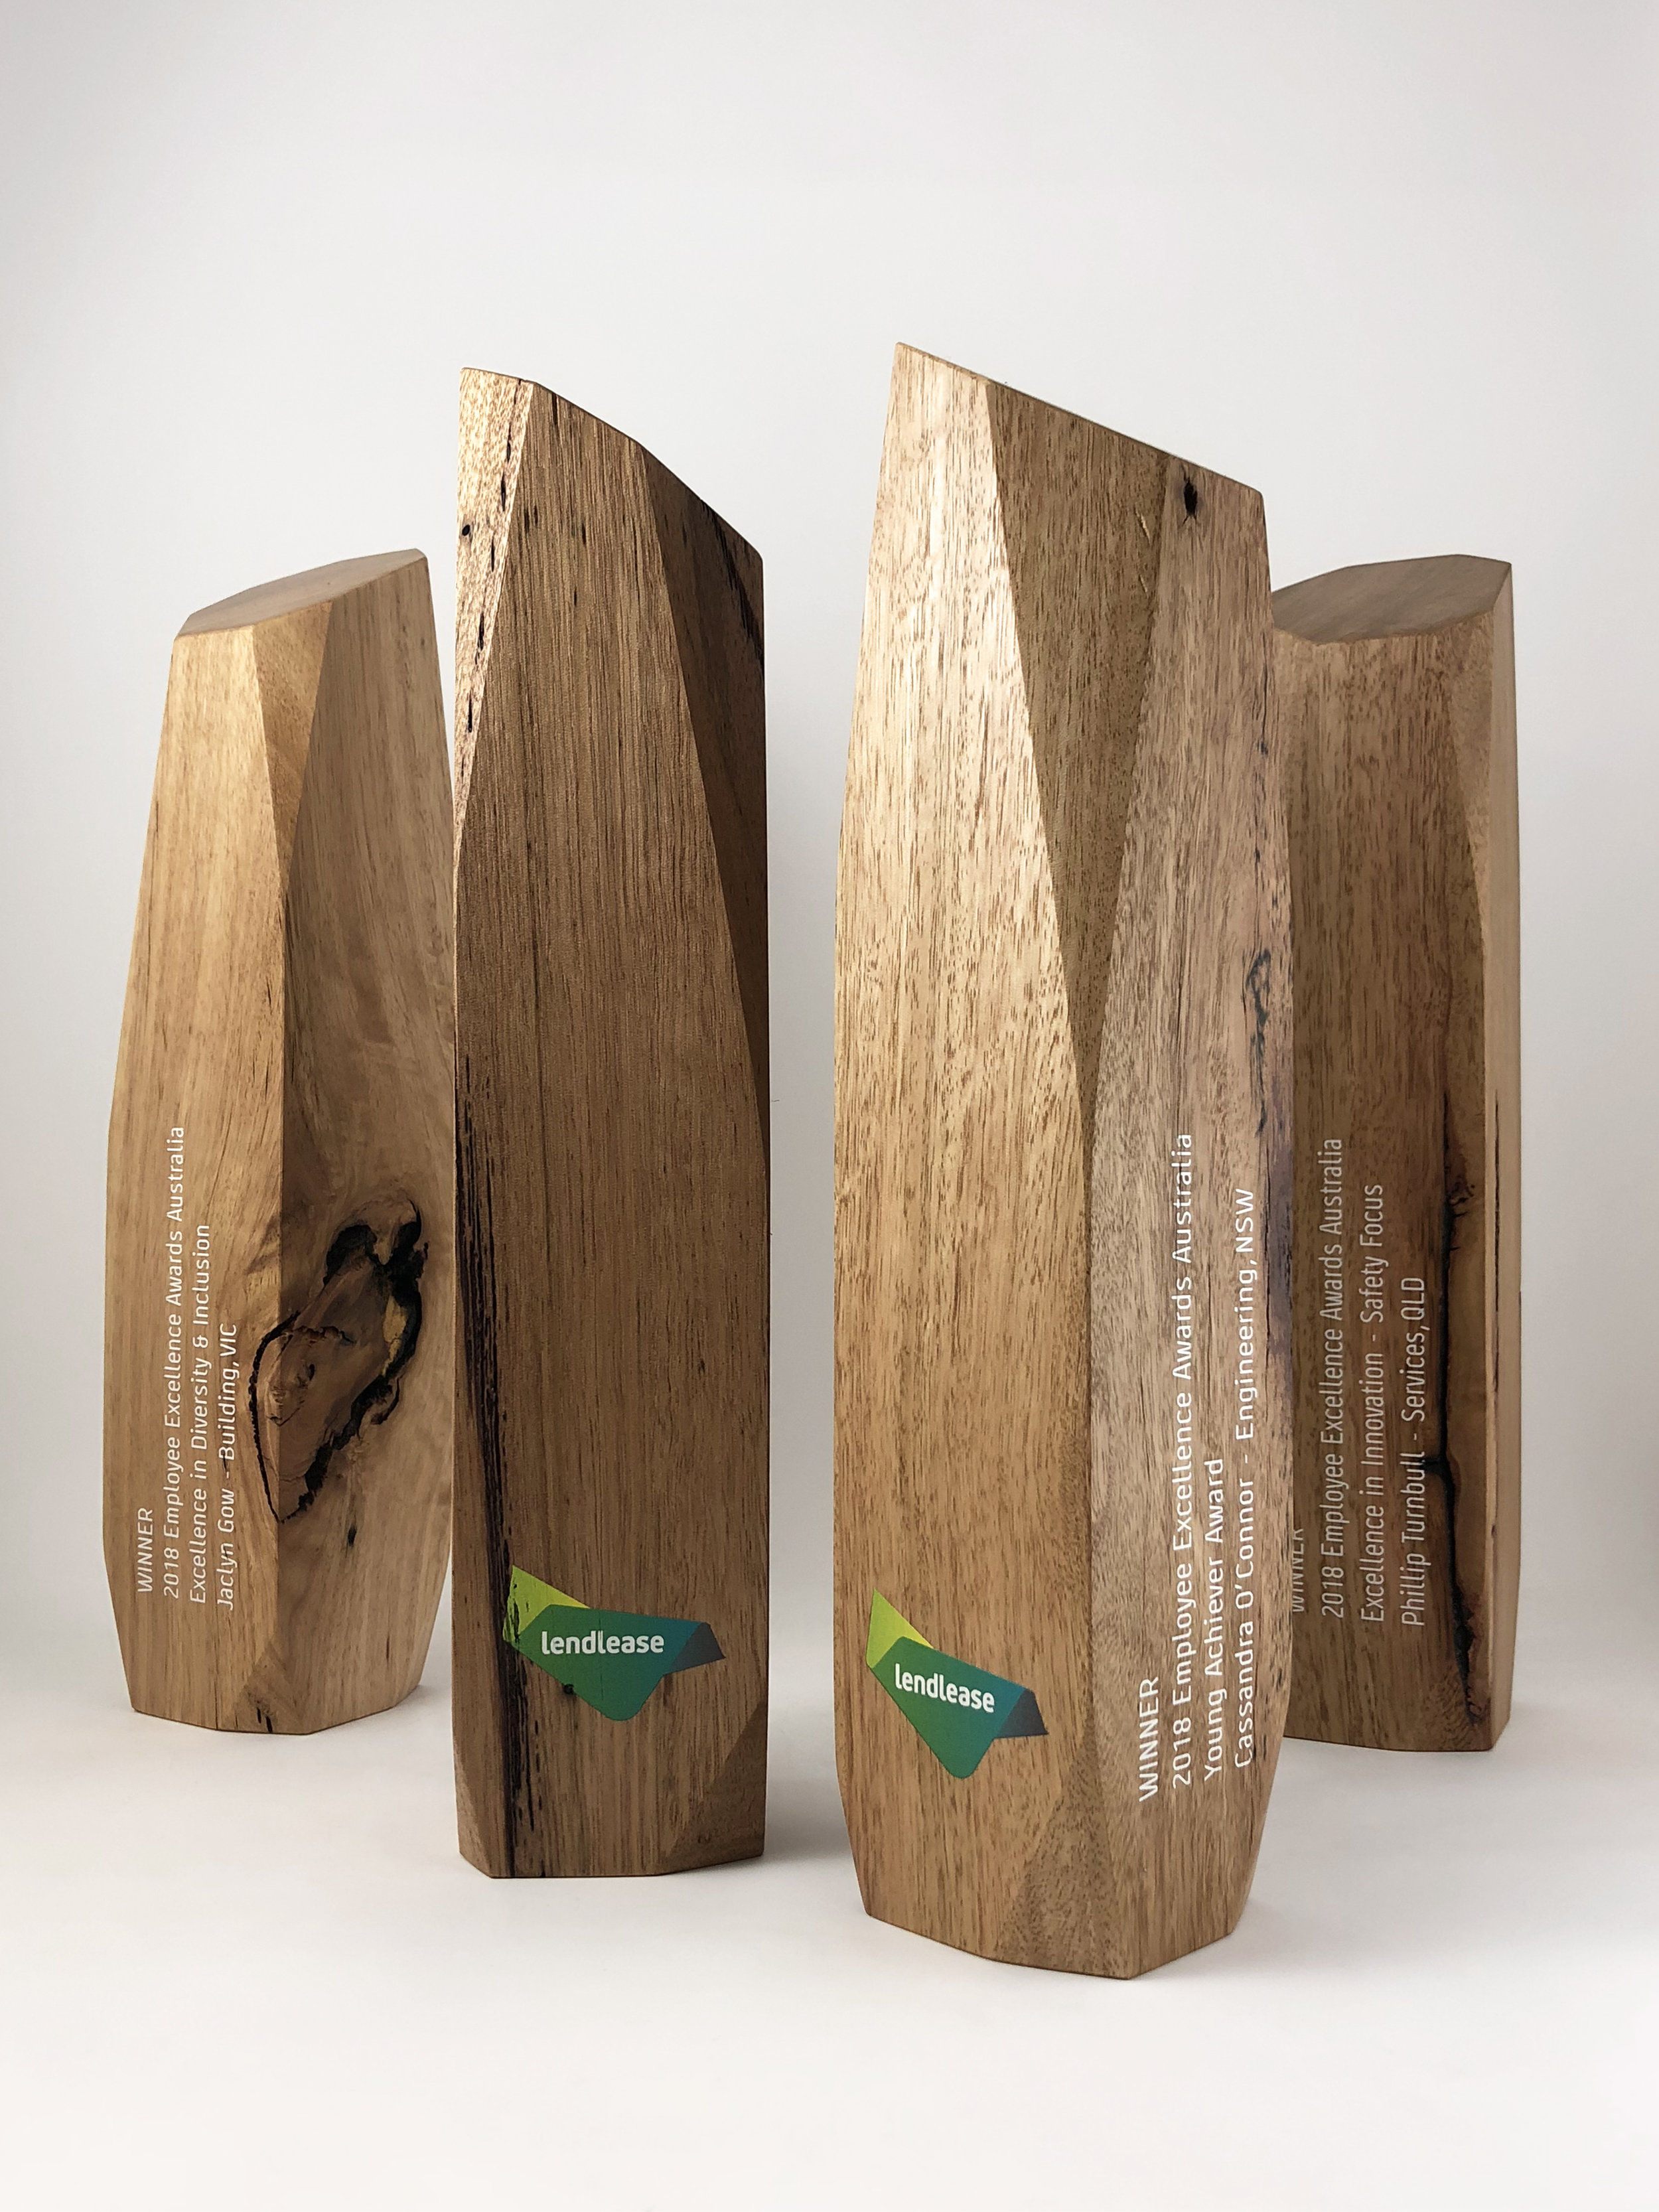 lendlease-reclaimed-timber-awards-trophy-02.jpg